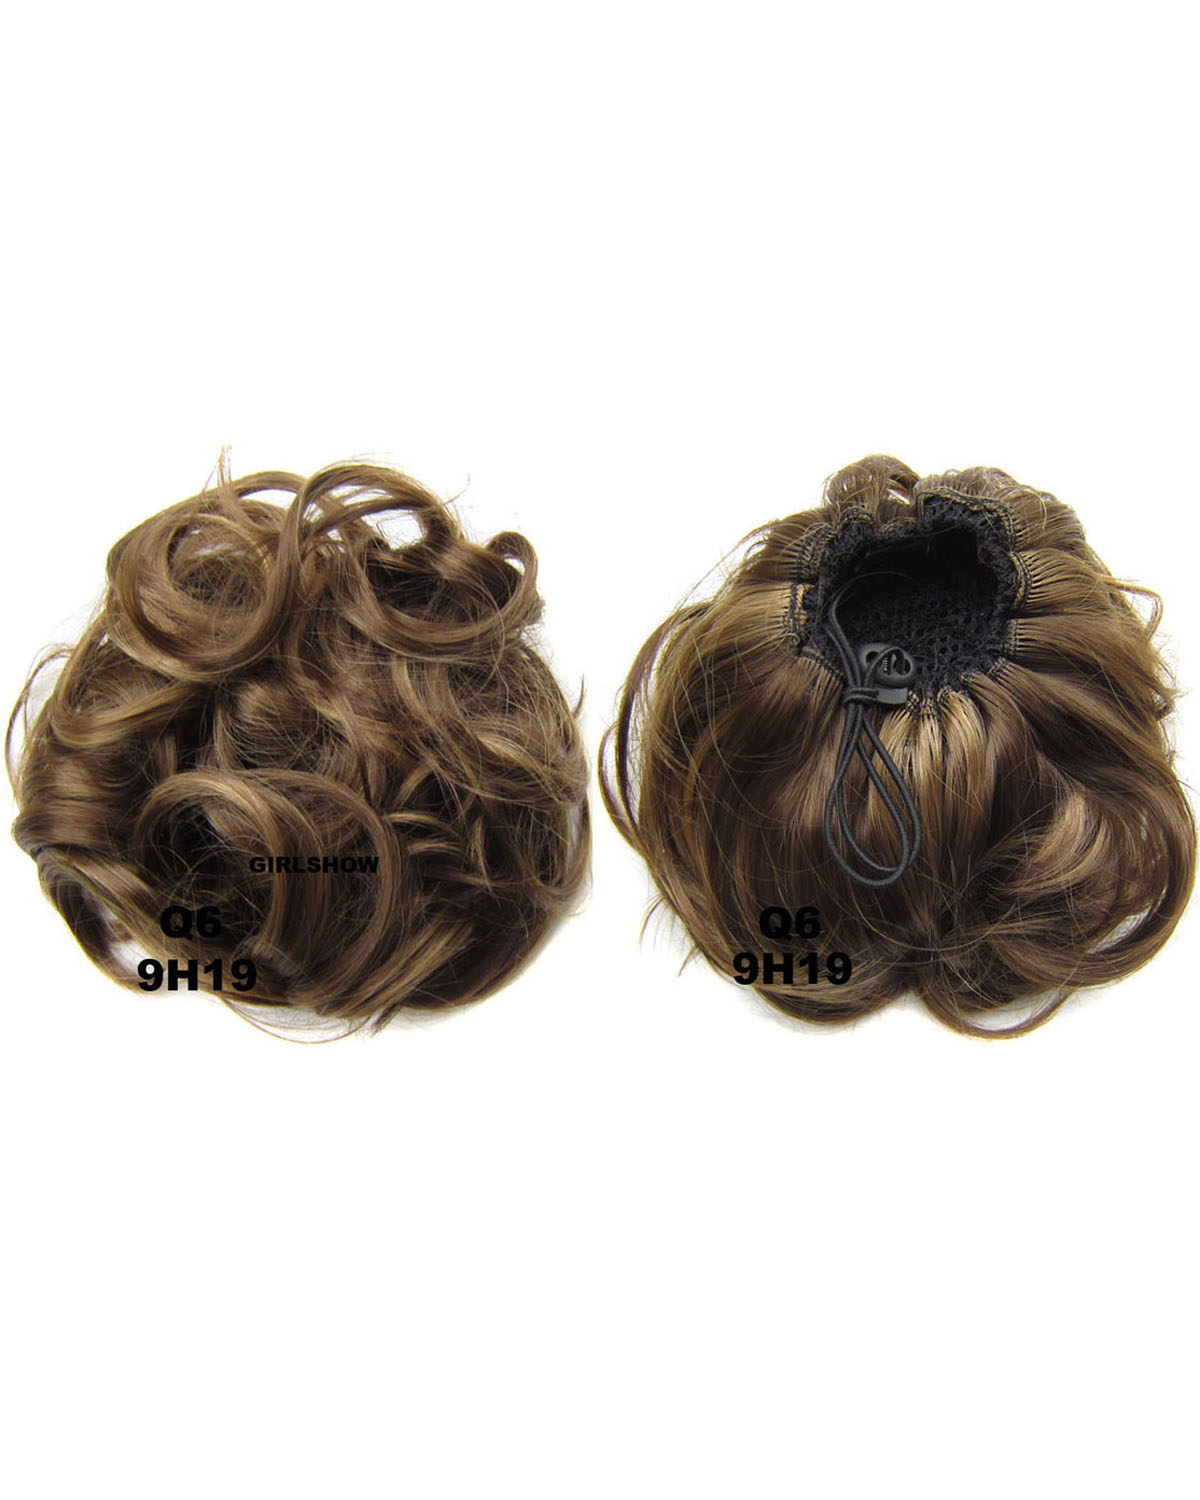 Ladies Clean and Silky Curly and Short Hair Buns Drawstring Synthetic Hair Extension Bride Scrunchies  9H19